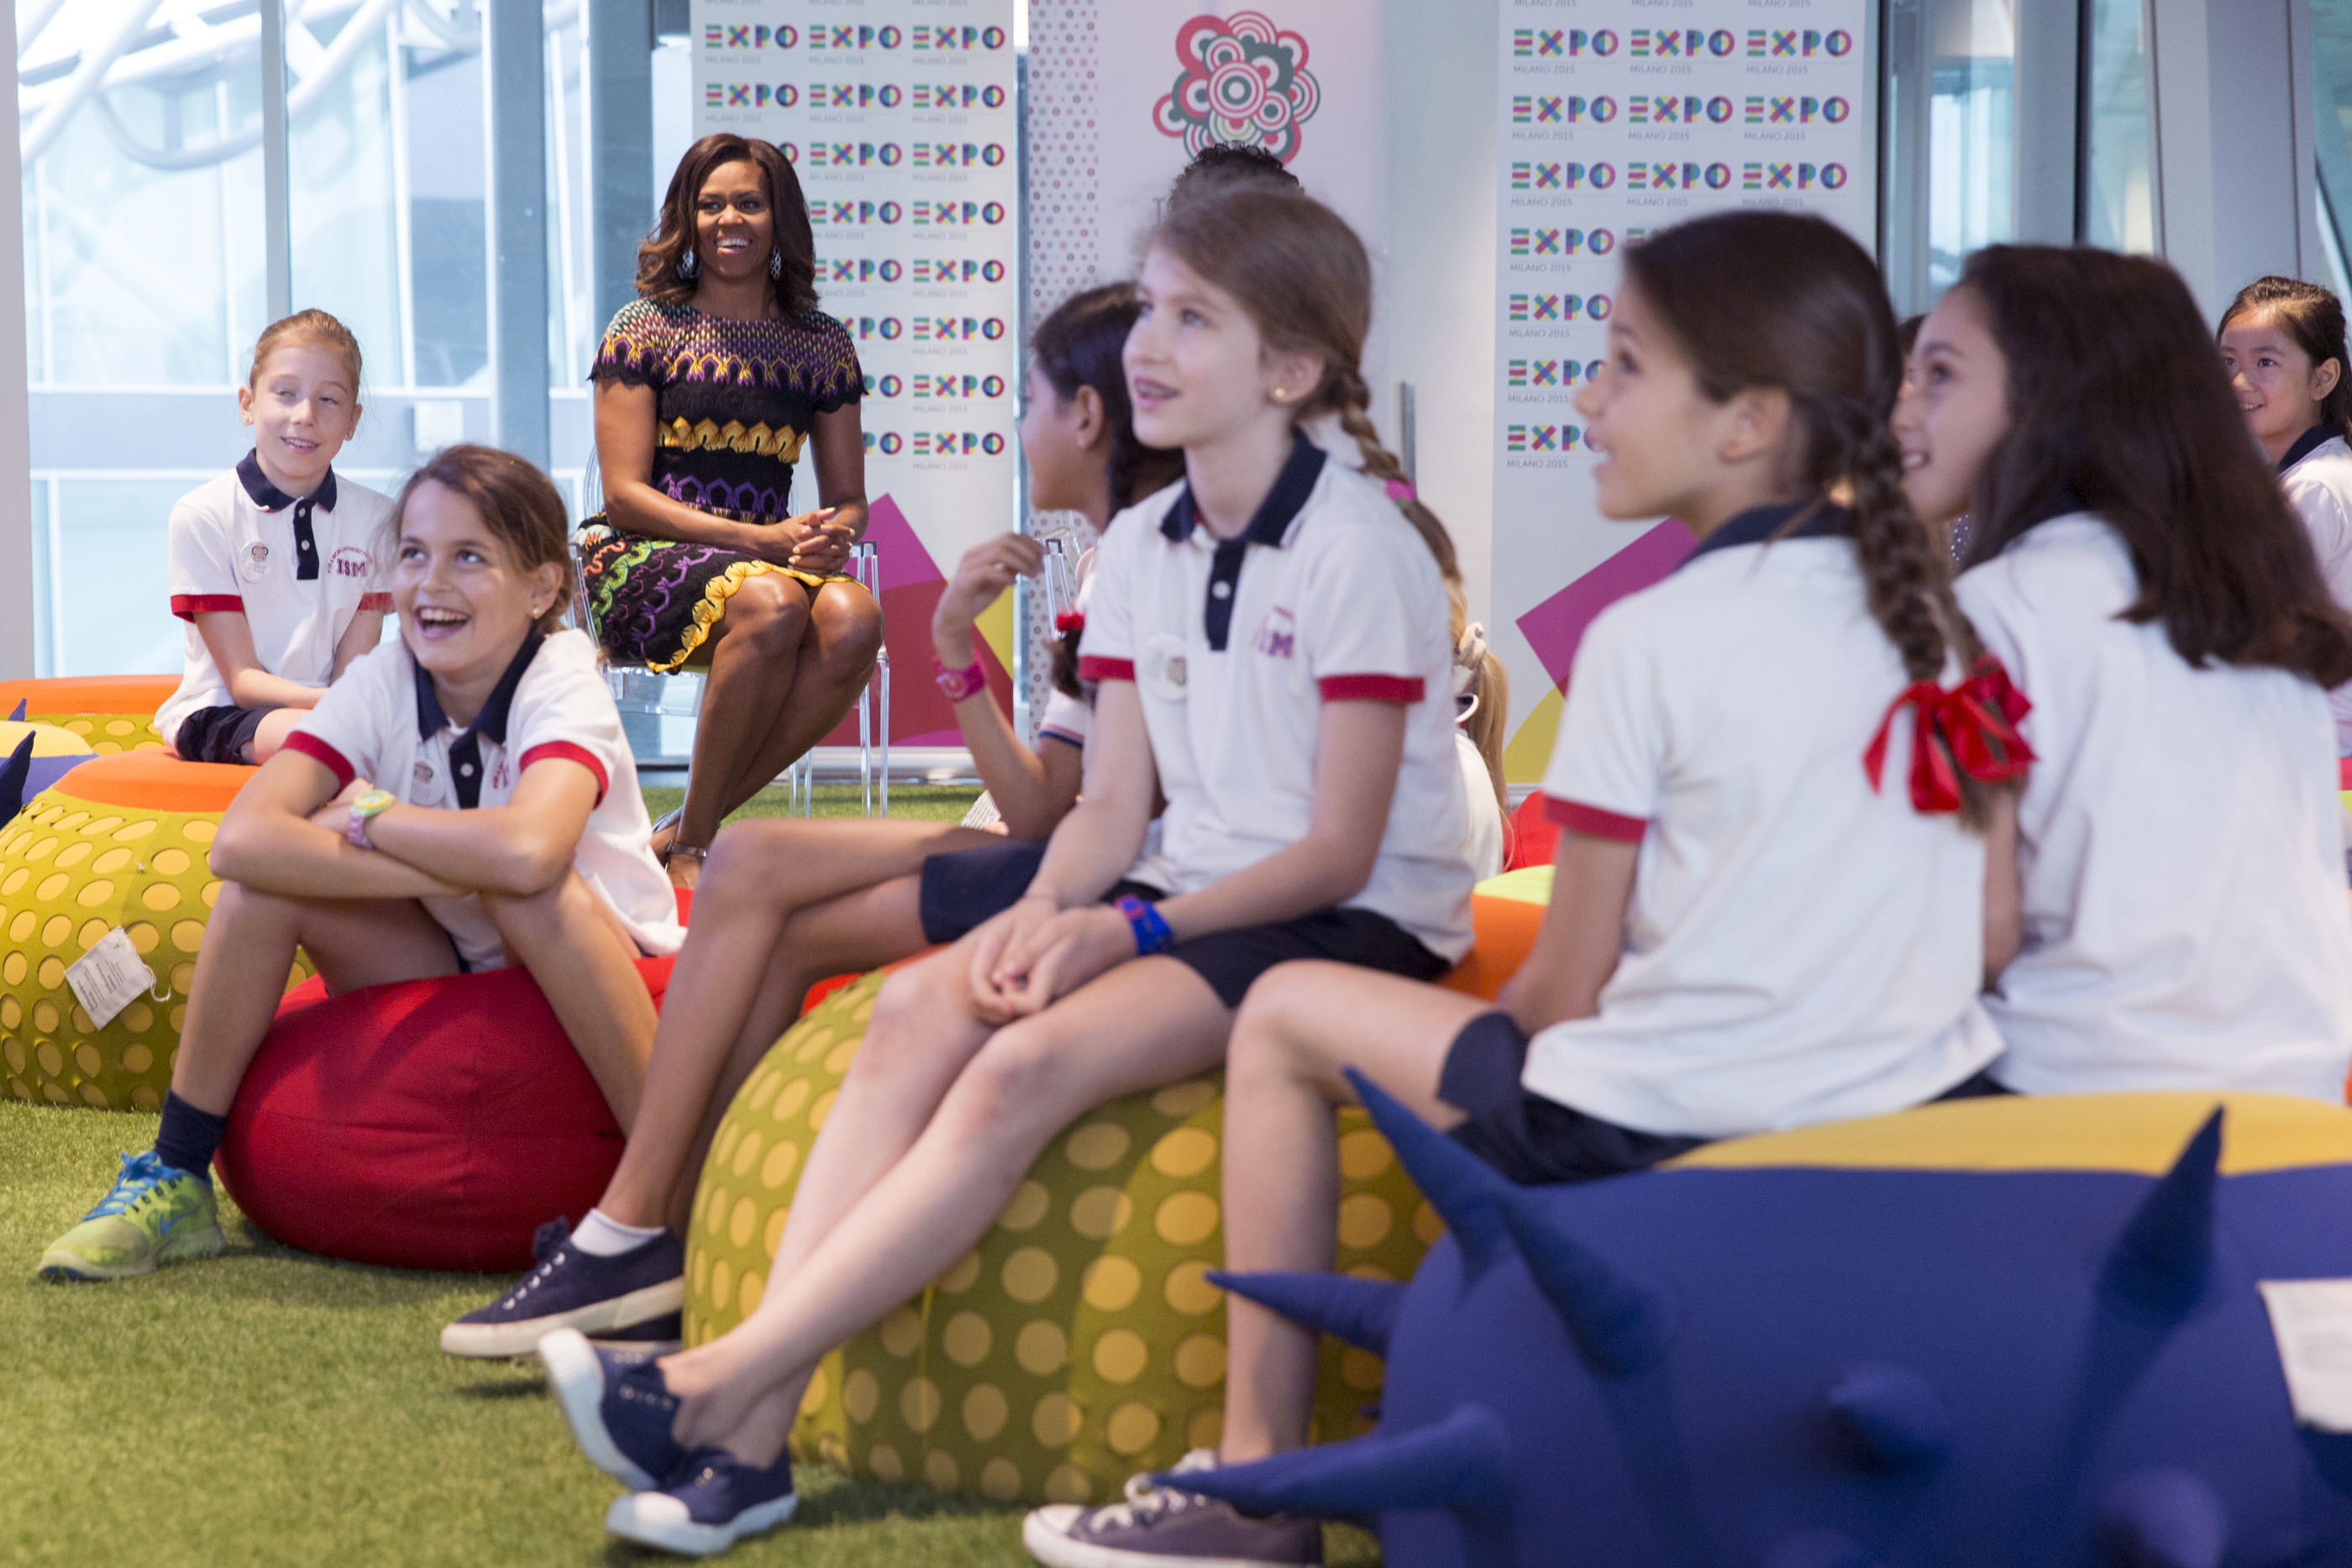 First Lady Michelle Obama watches food conservation videos at the World Expo in Milan